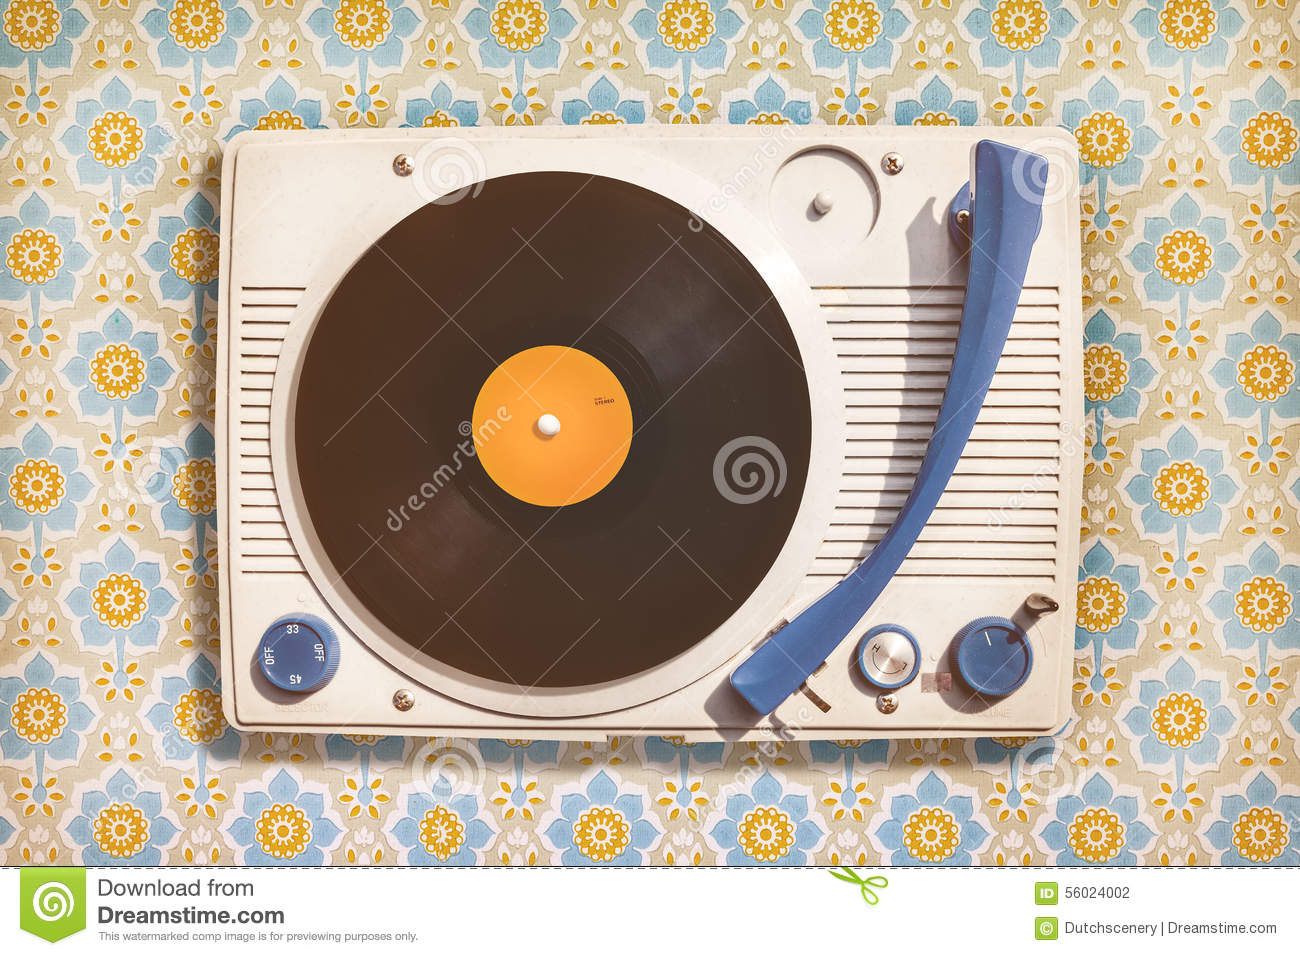 Vintage Record Player On Top Of Flower Wallpaper Stock